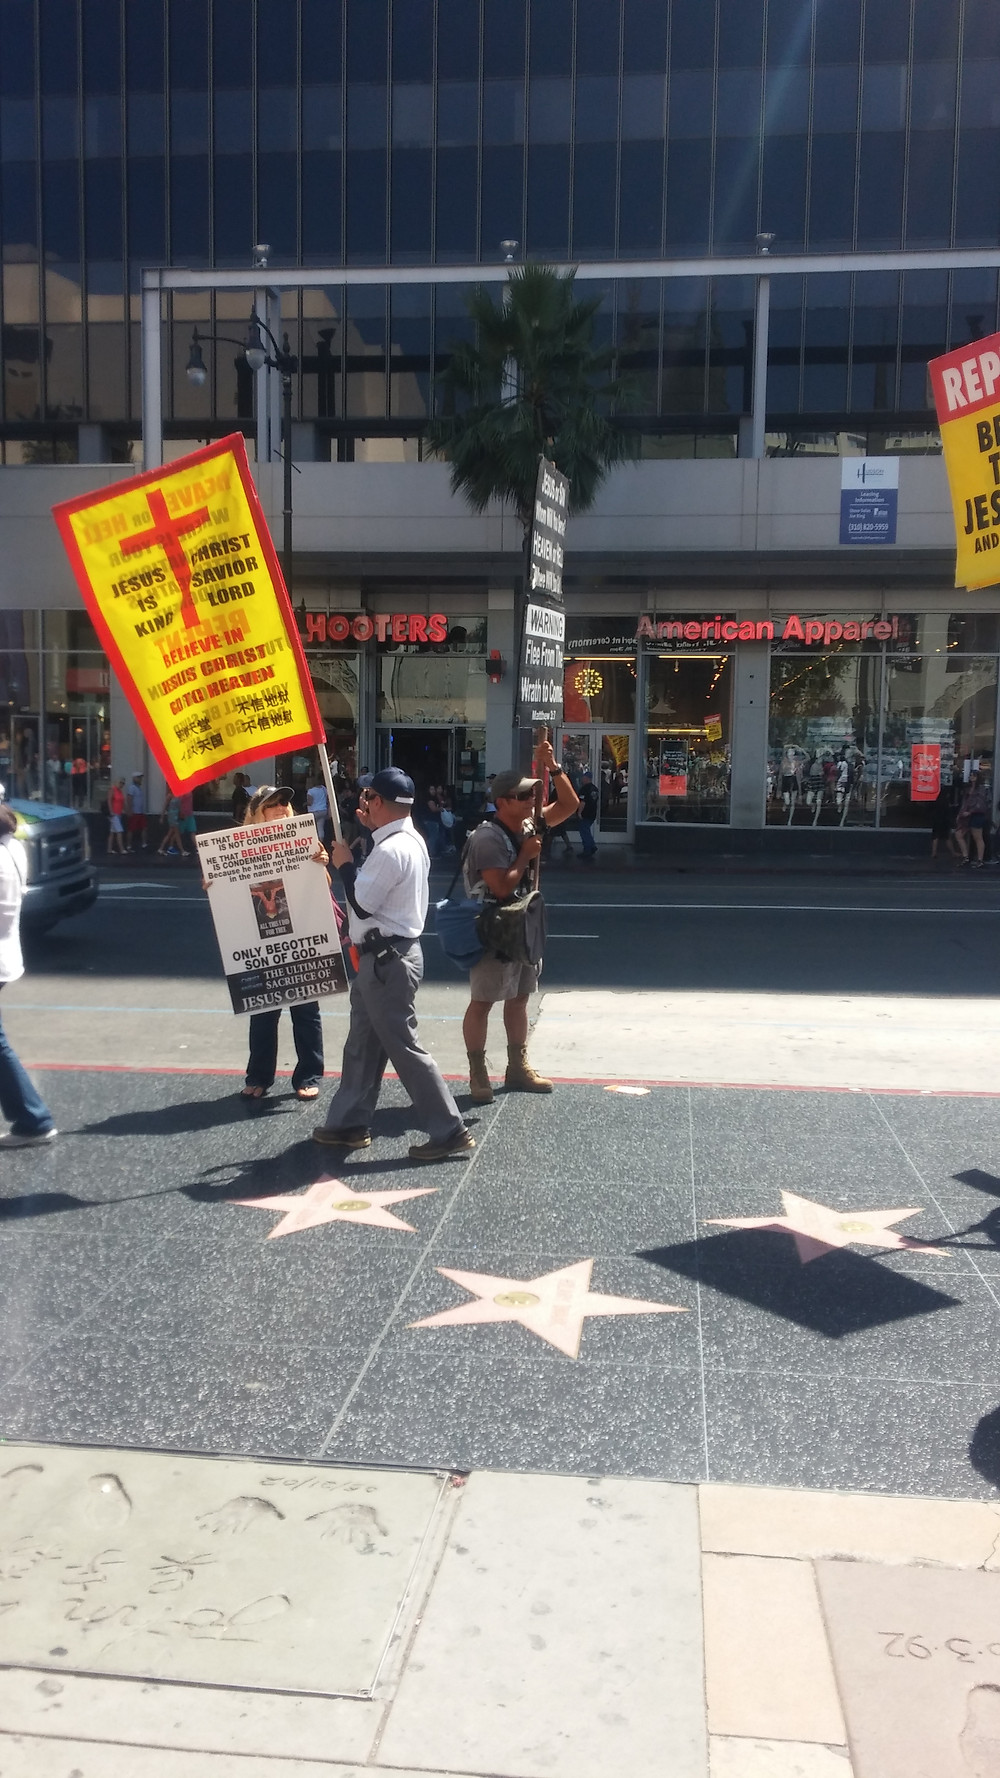 Picketers along the Hollywood Walk of Fame